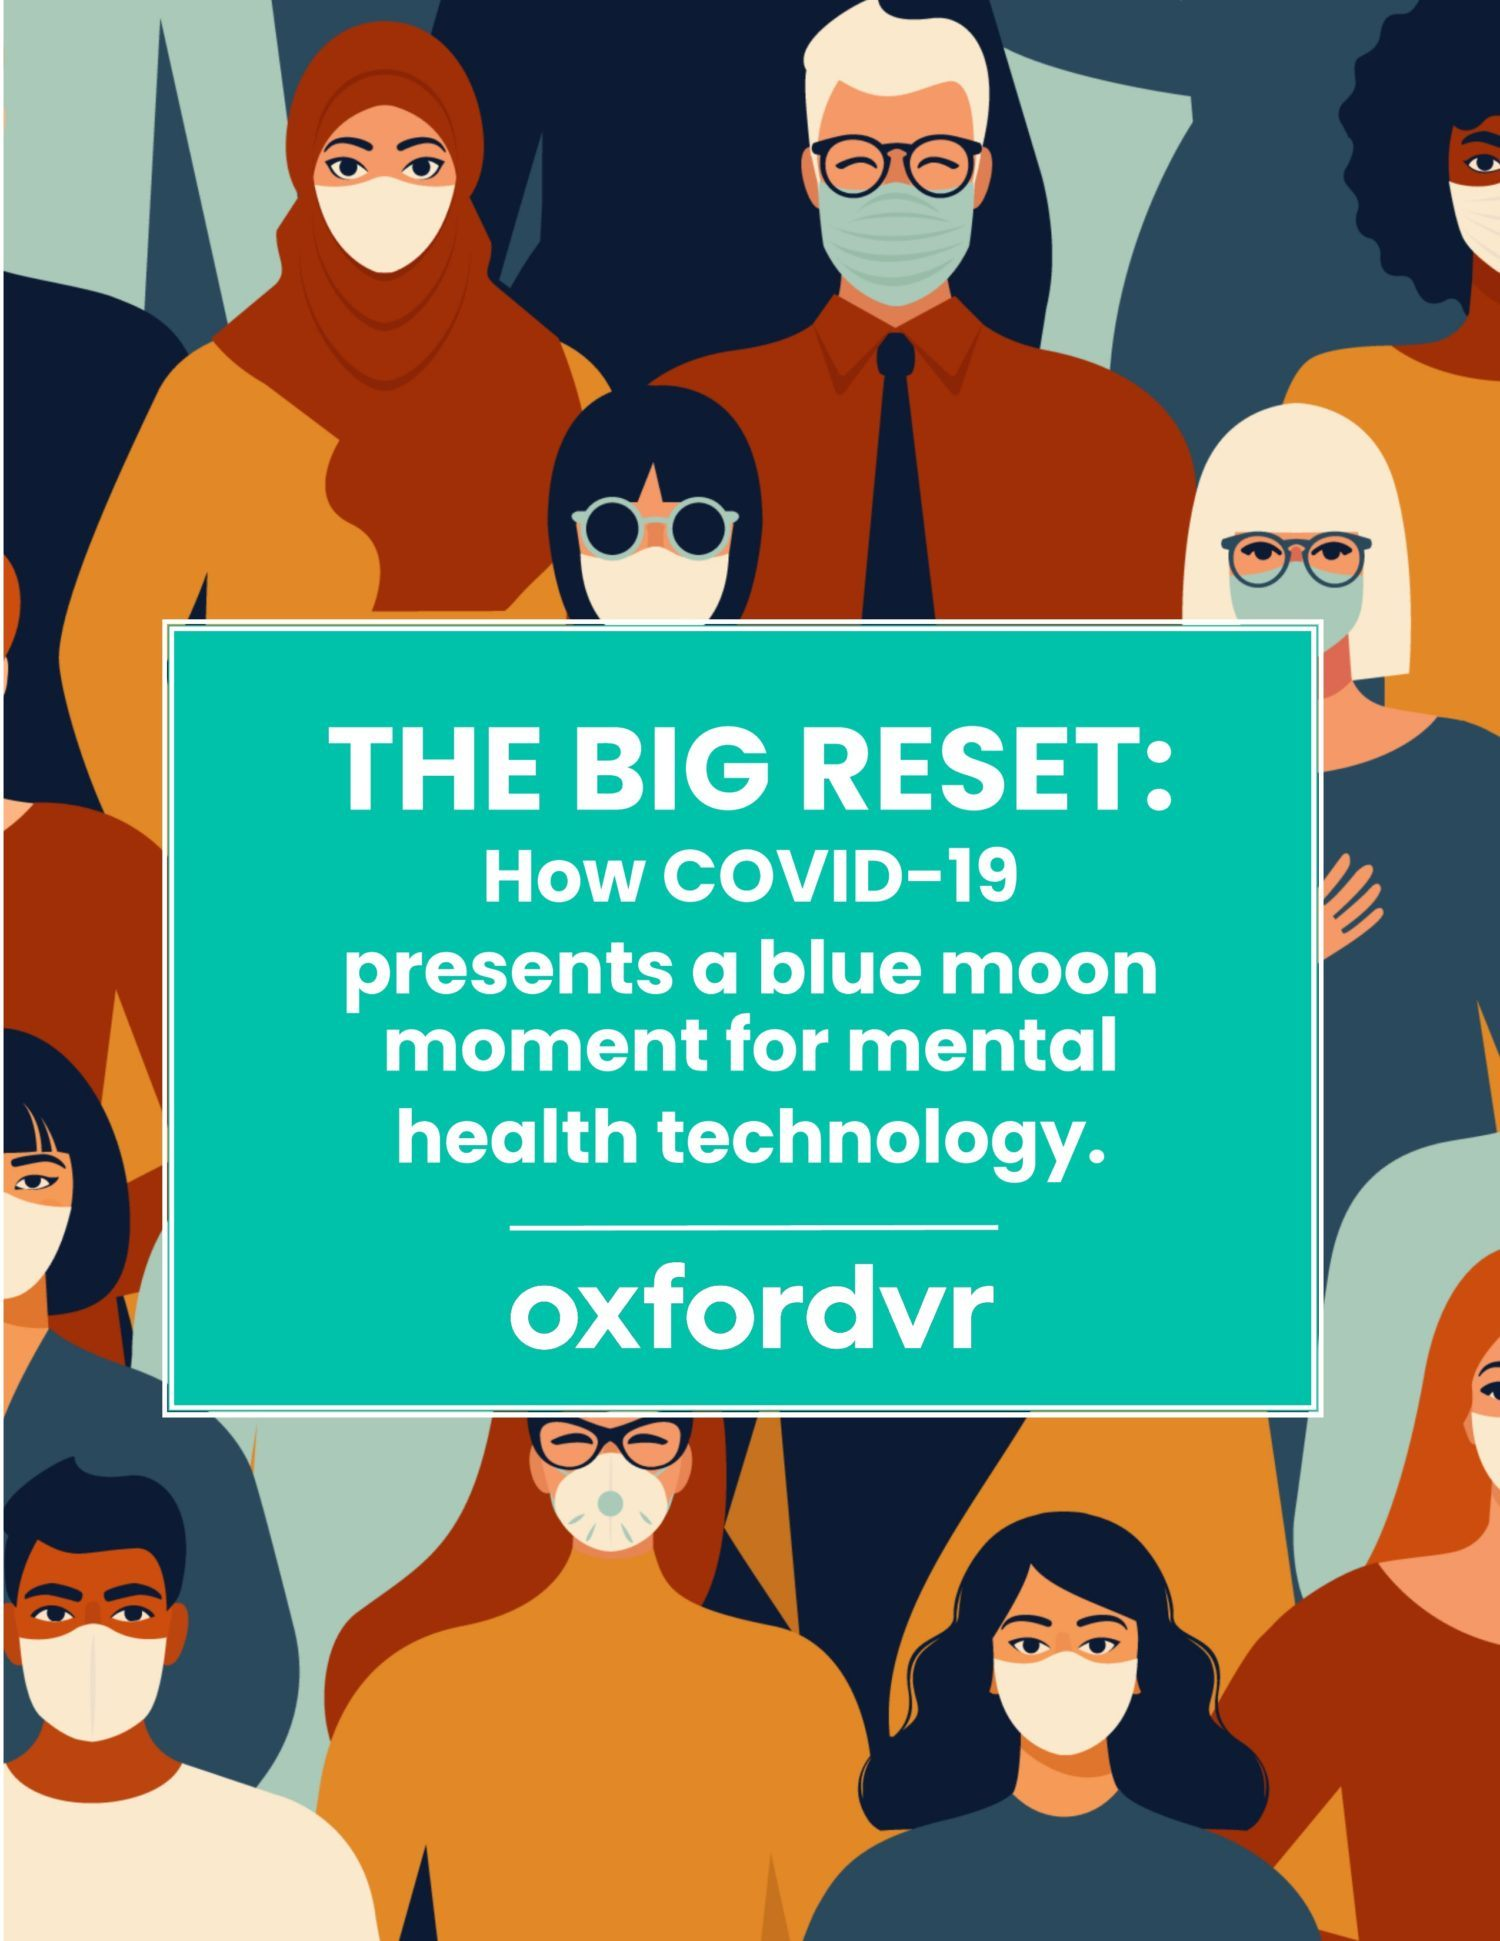 Report: How COVID-19 is a Blue Moon Moment for Mental Health Technology